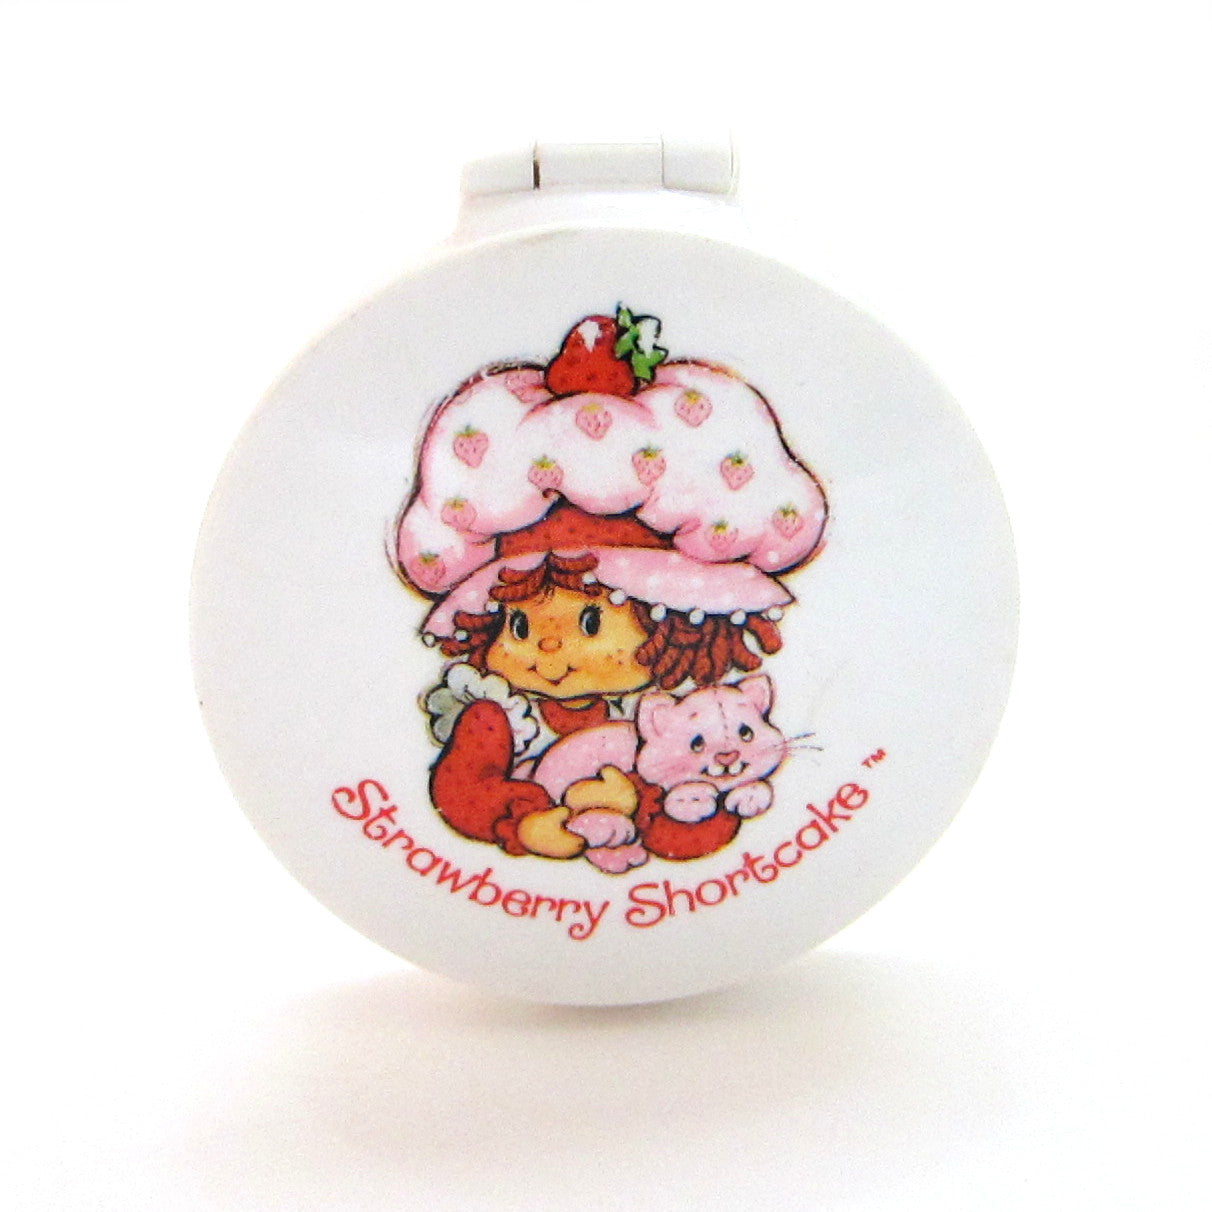 Strawberry Shortcake mirror compact from face cream